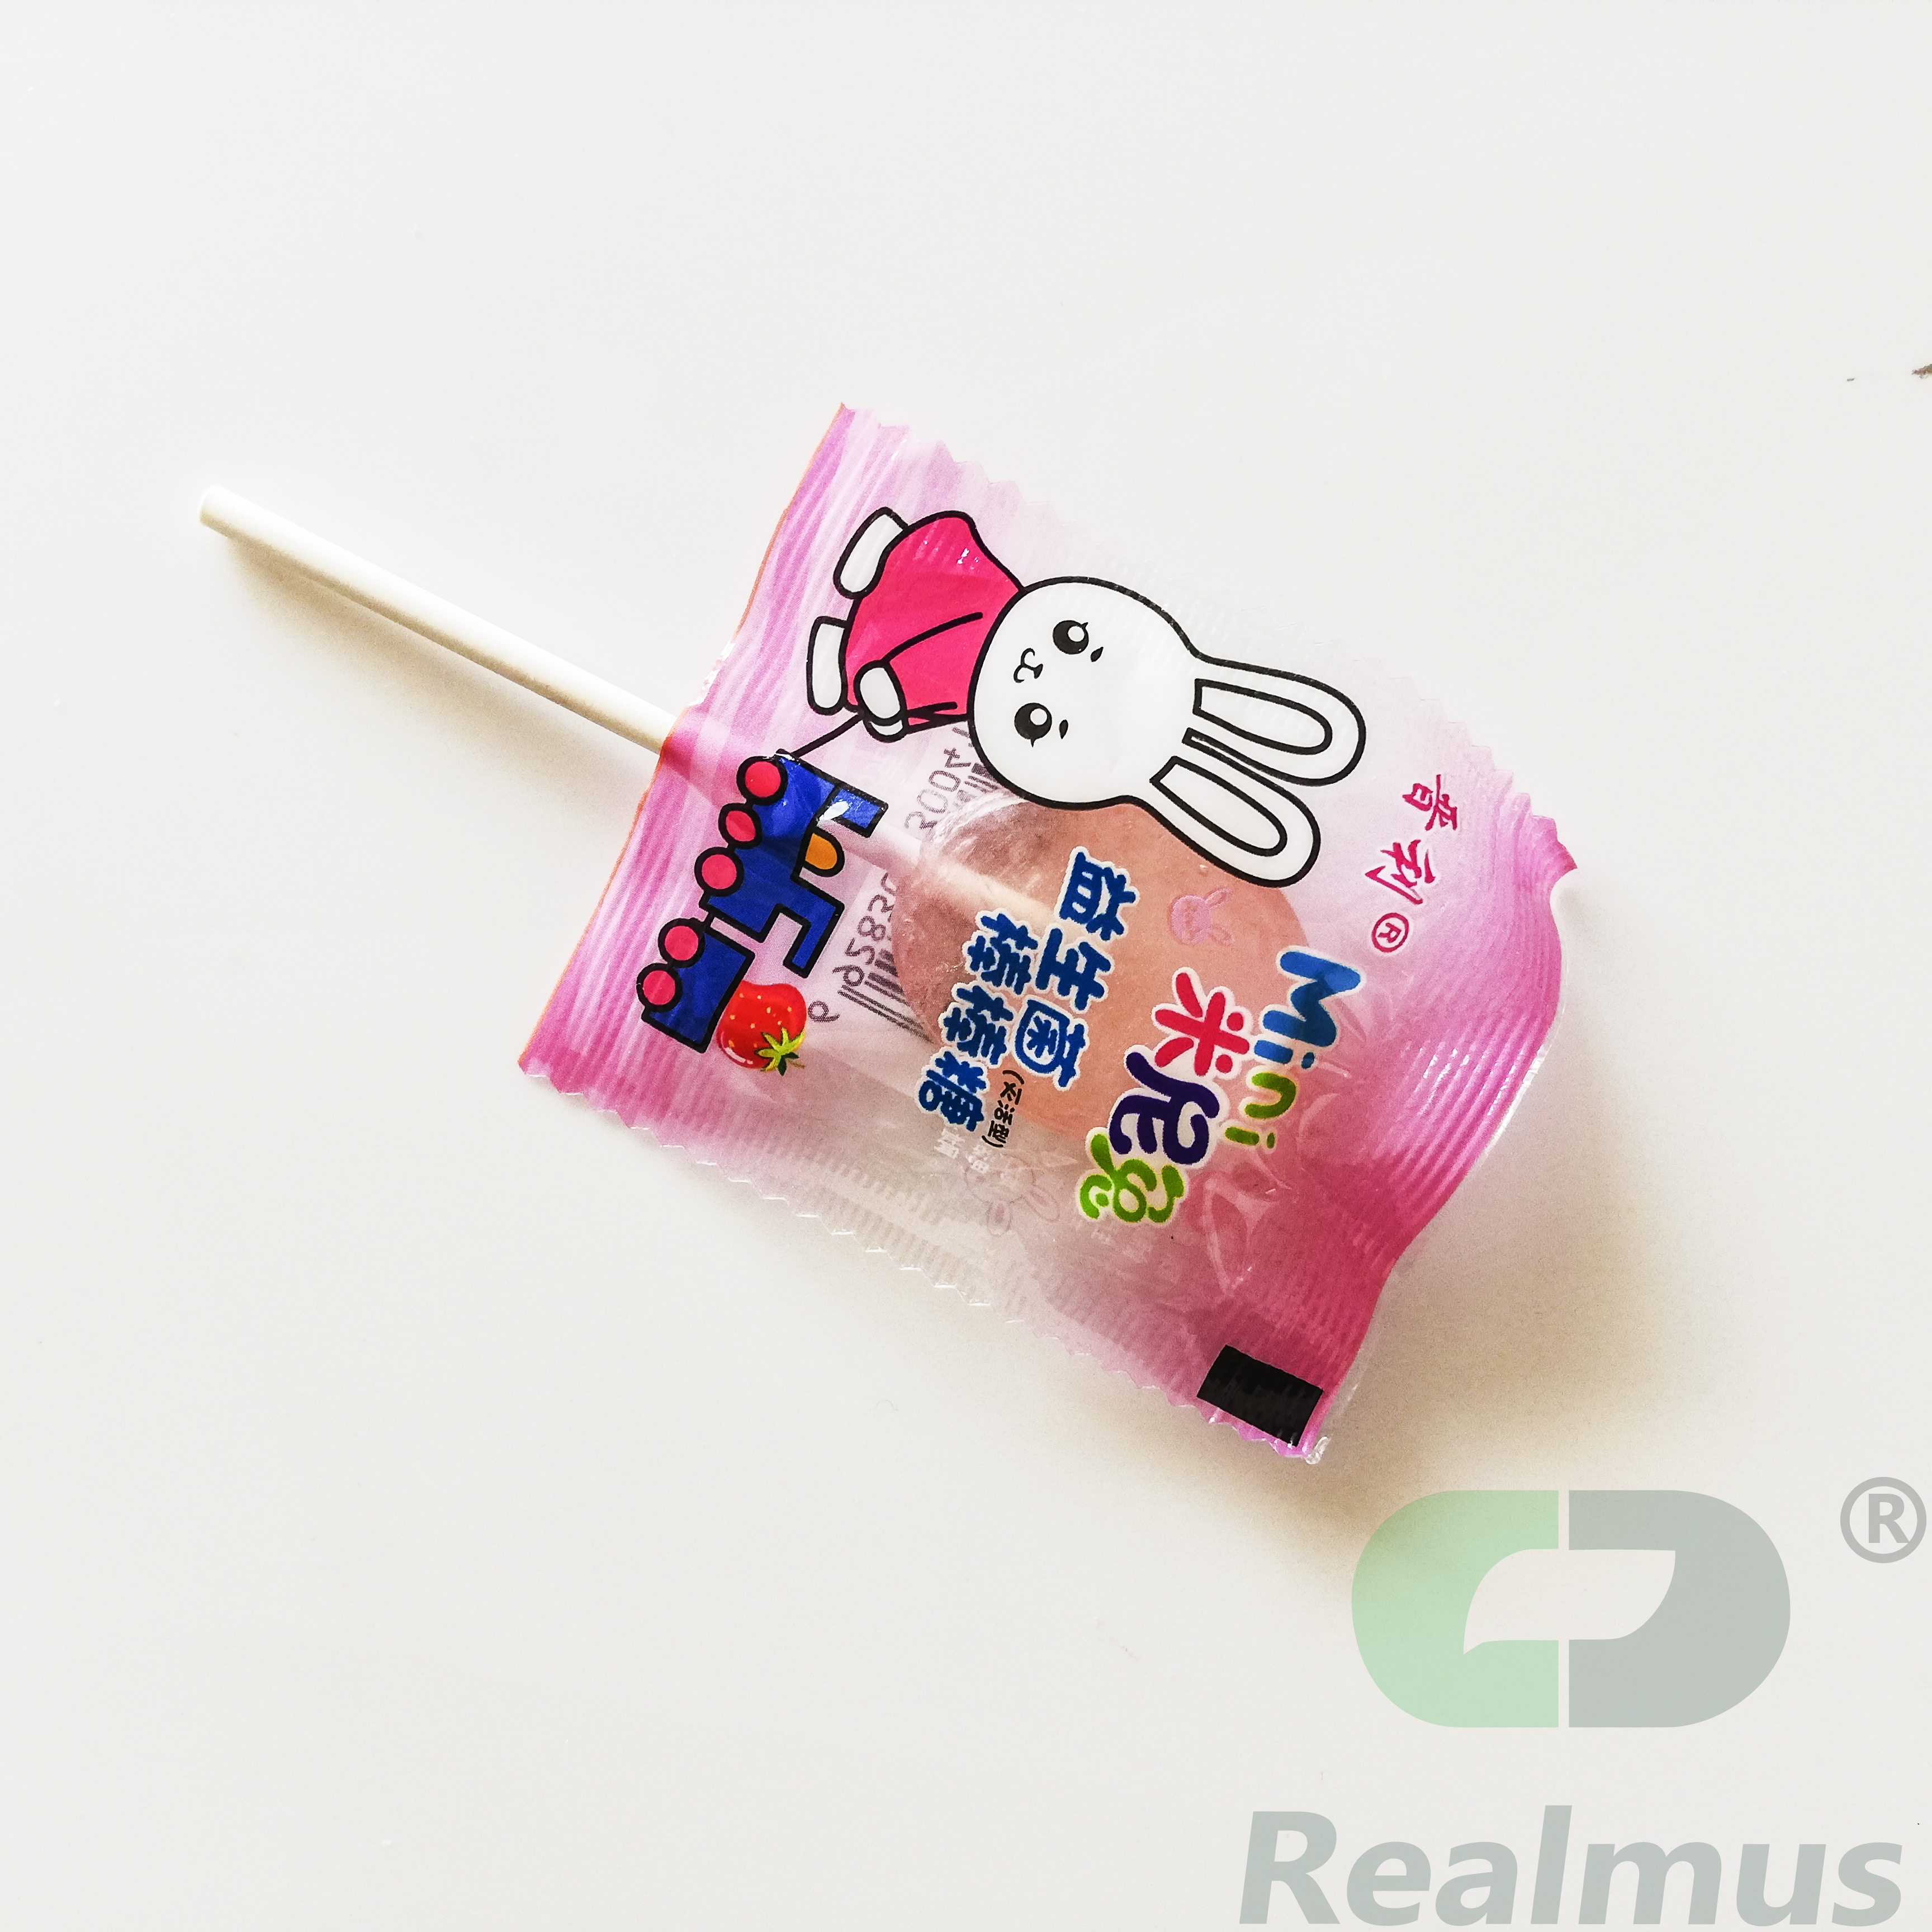 Colorful Press Candy Lollipop Health Fruity Flavor Candy OVAL SHAPE GLUCOSE